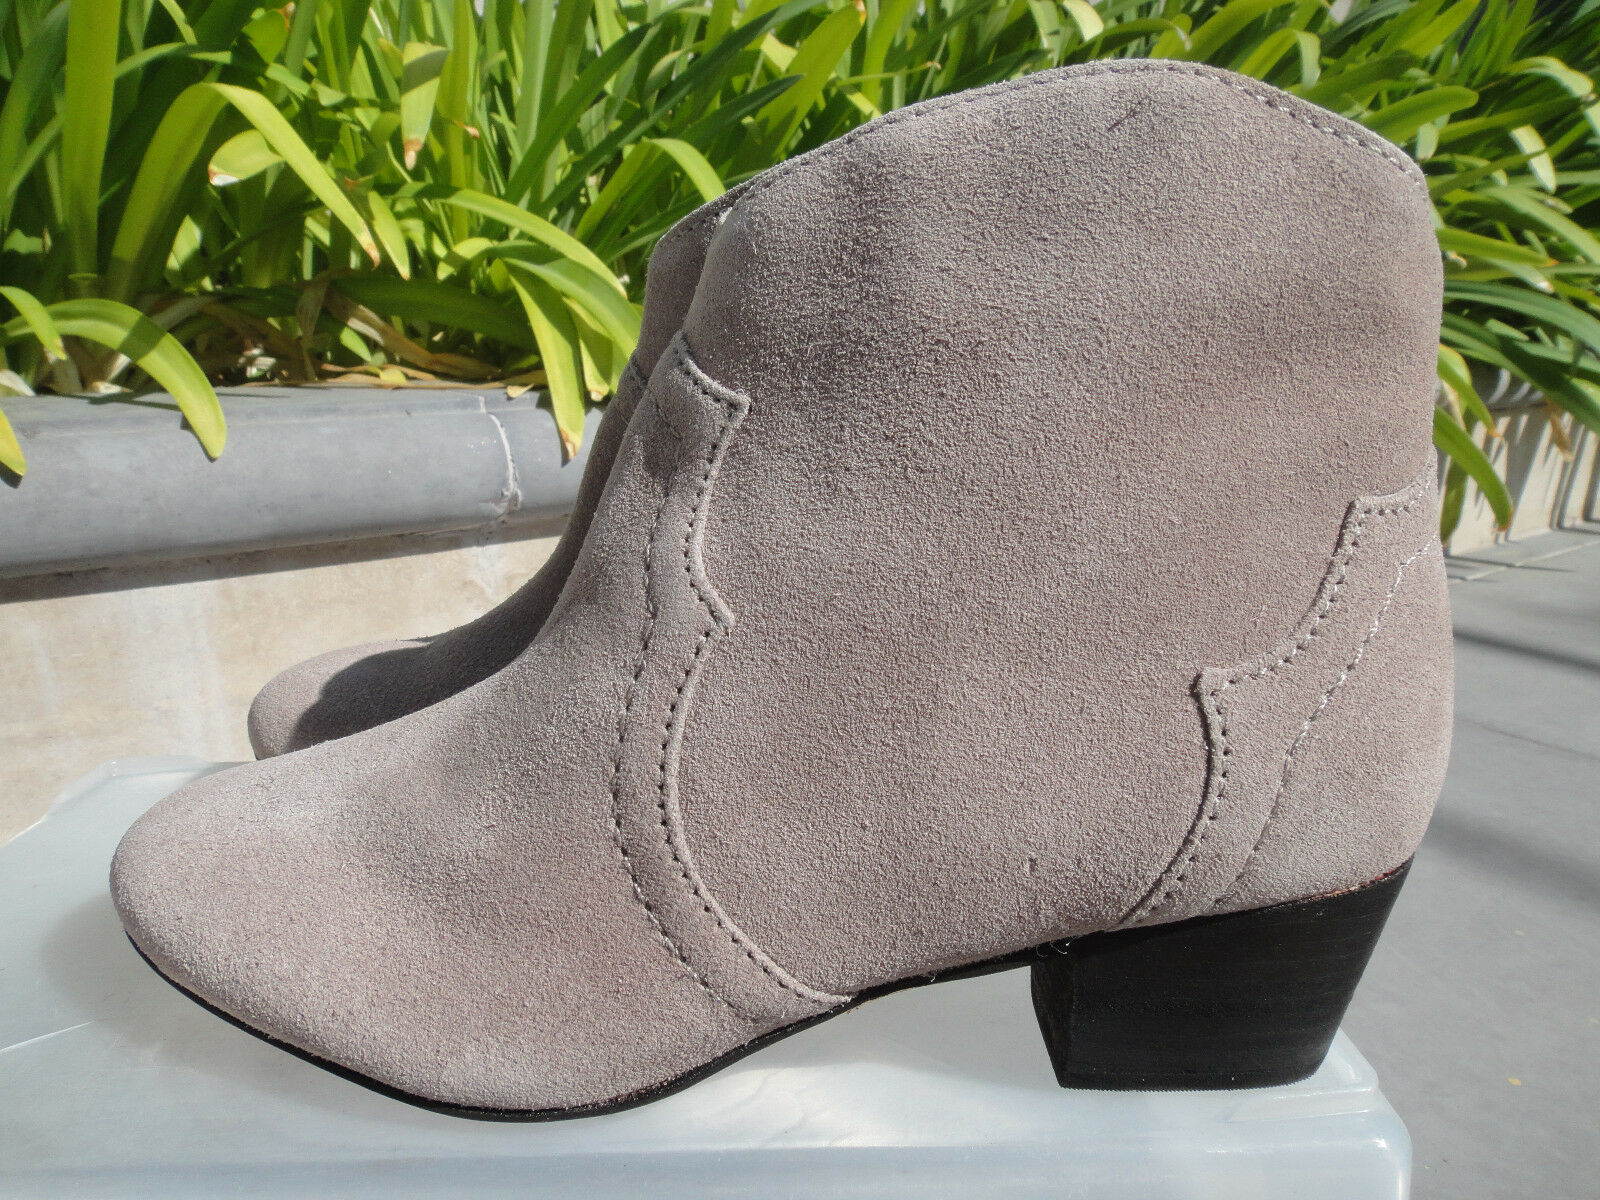 Schutz ABIHA Boot Bootie Taupe Taupe Taupe Goat Suede, Dicker Style w/Inside Zip, US Sz 7M 699d04